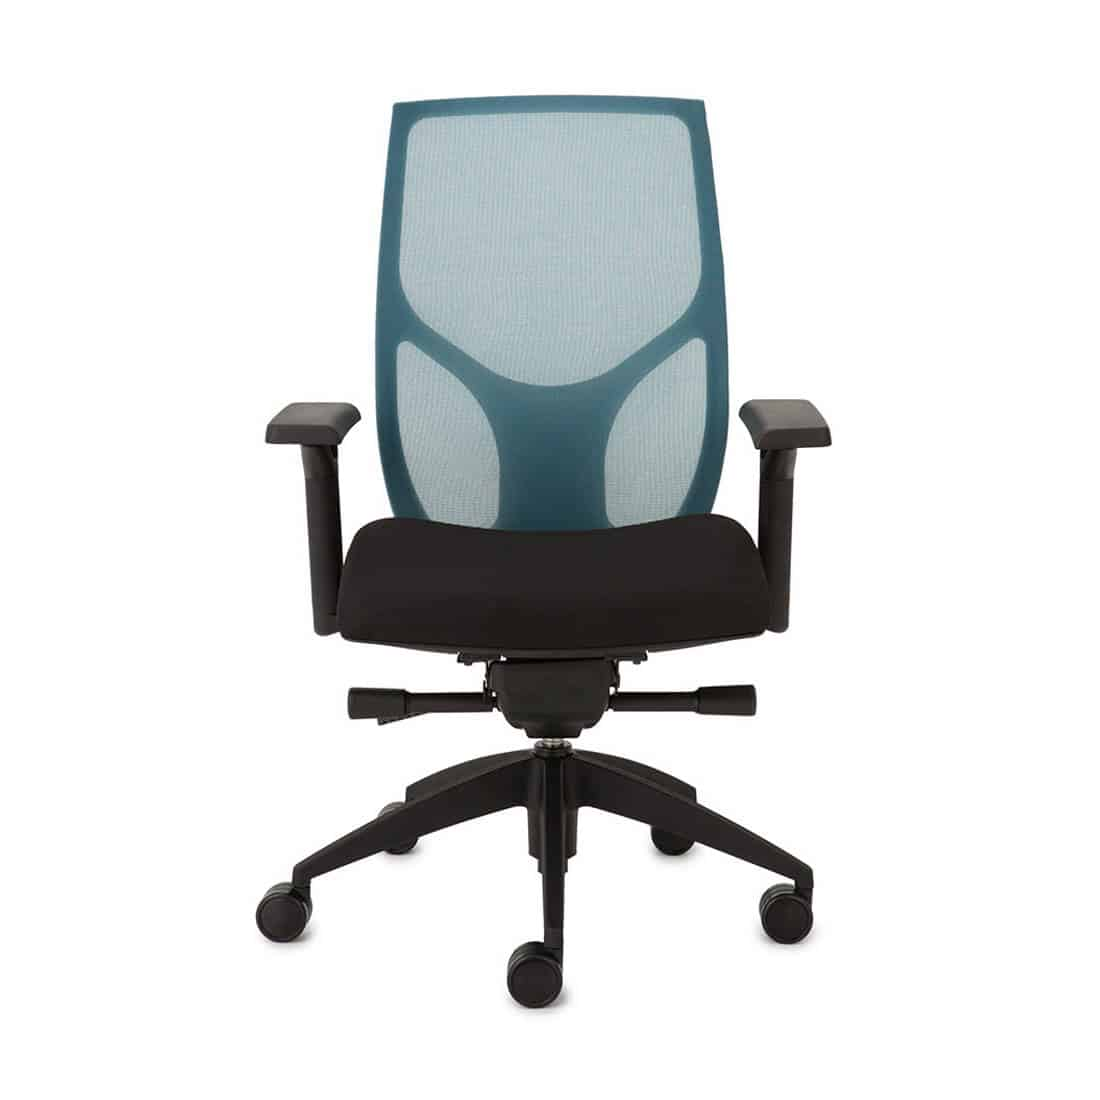 sc 1 st  Joyce Contract Interiors & 9 to 5 Seating Vault Chair Task Chairs - Joyce Contract Interiors